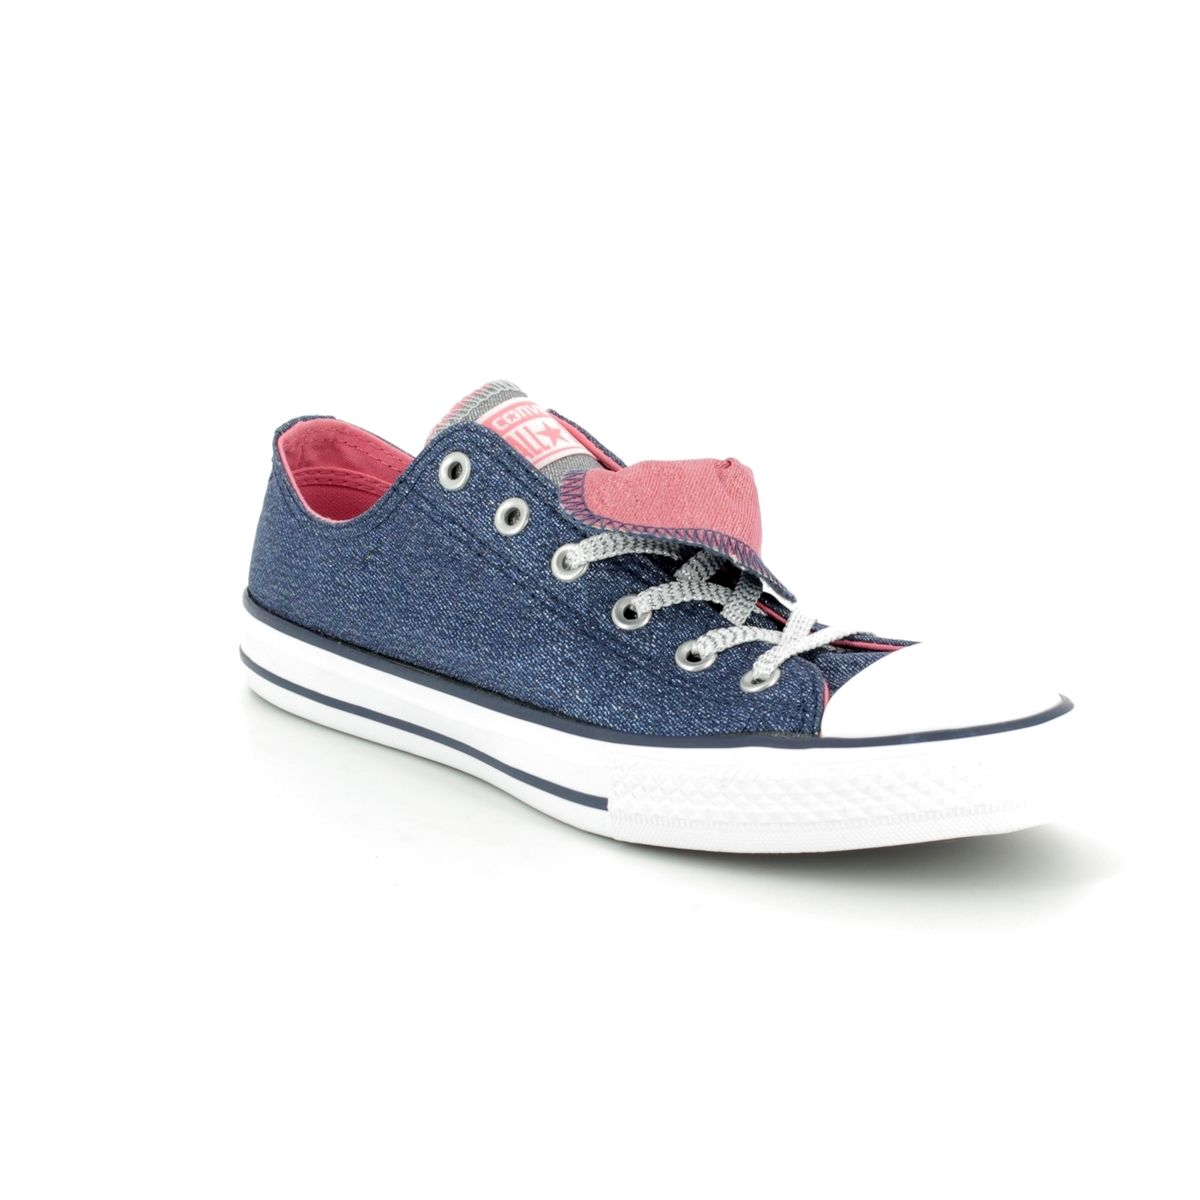 496eff51079d49 Converse Trainers - Navy - 658112C Chuck Taylor All Star Double Tongue OX